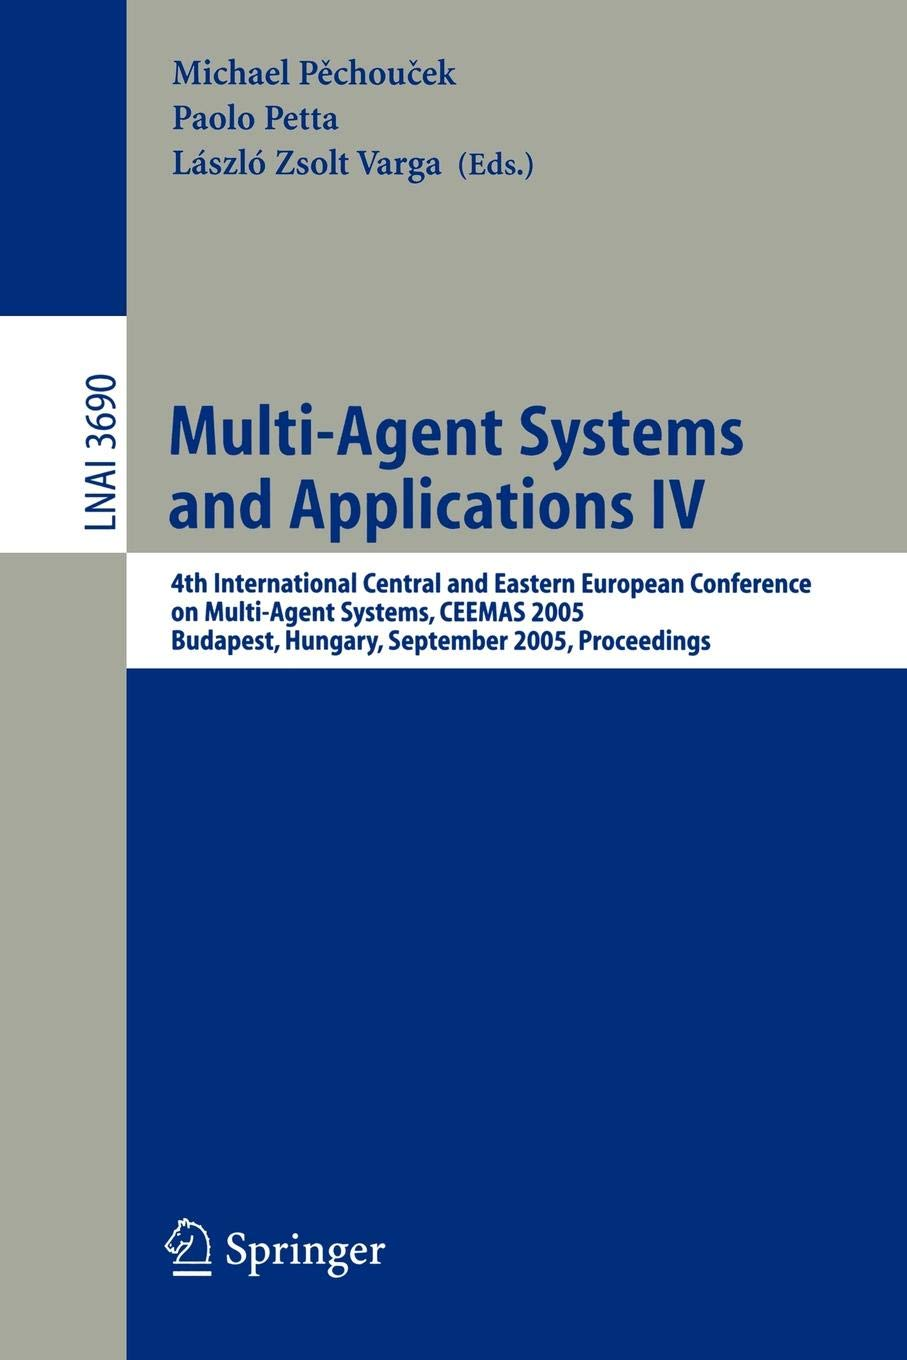 Multi-Agent Systems and Applications IV: 4th International Central and Eastern European Conference on Multi-Agent Systems, CEEMAS 2005, Budapest, ... (Lecture Notes in Computer Science (3690))